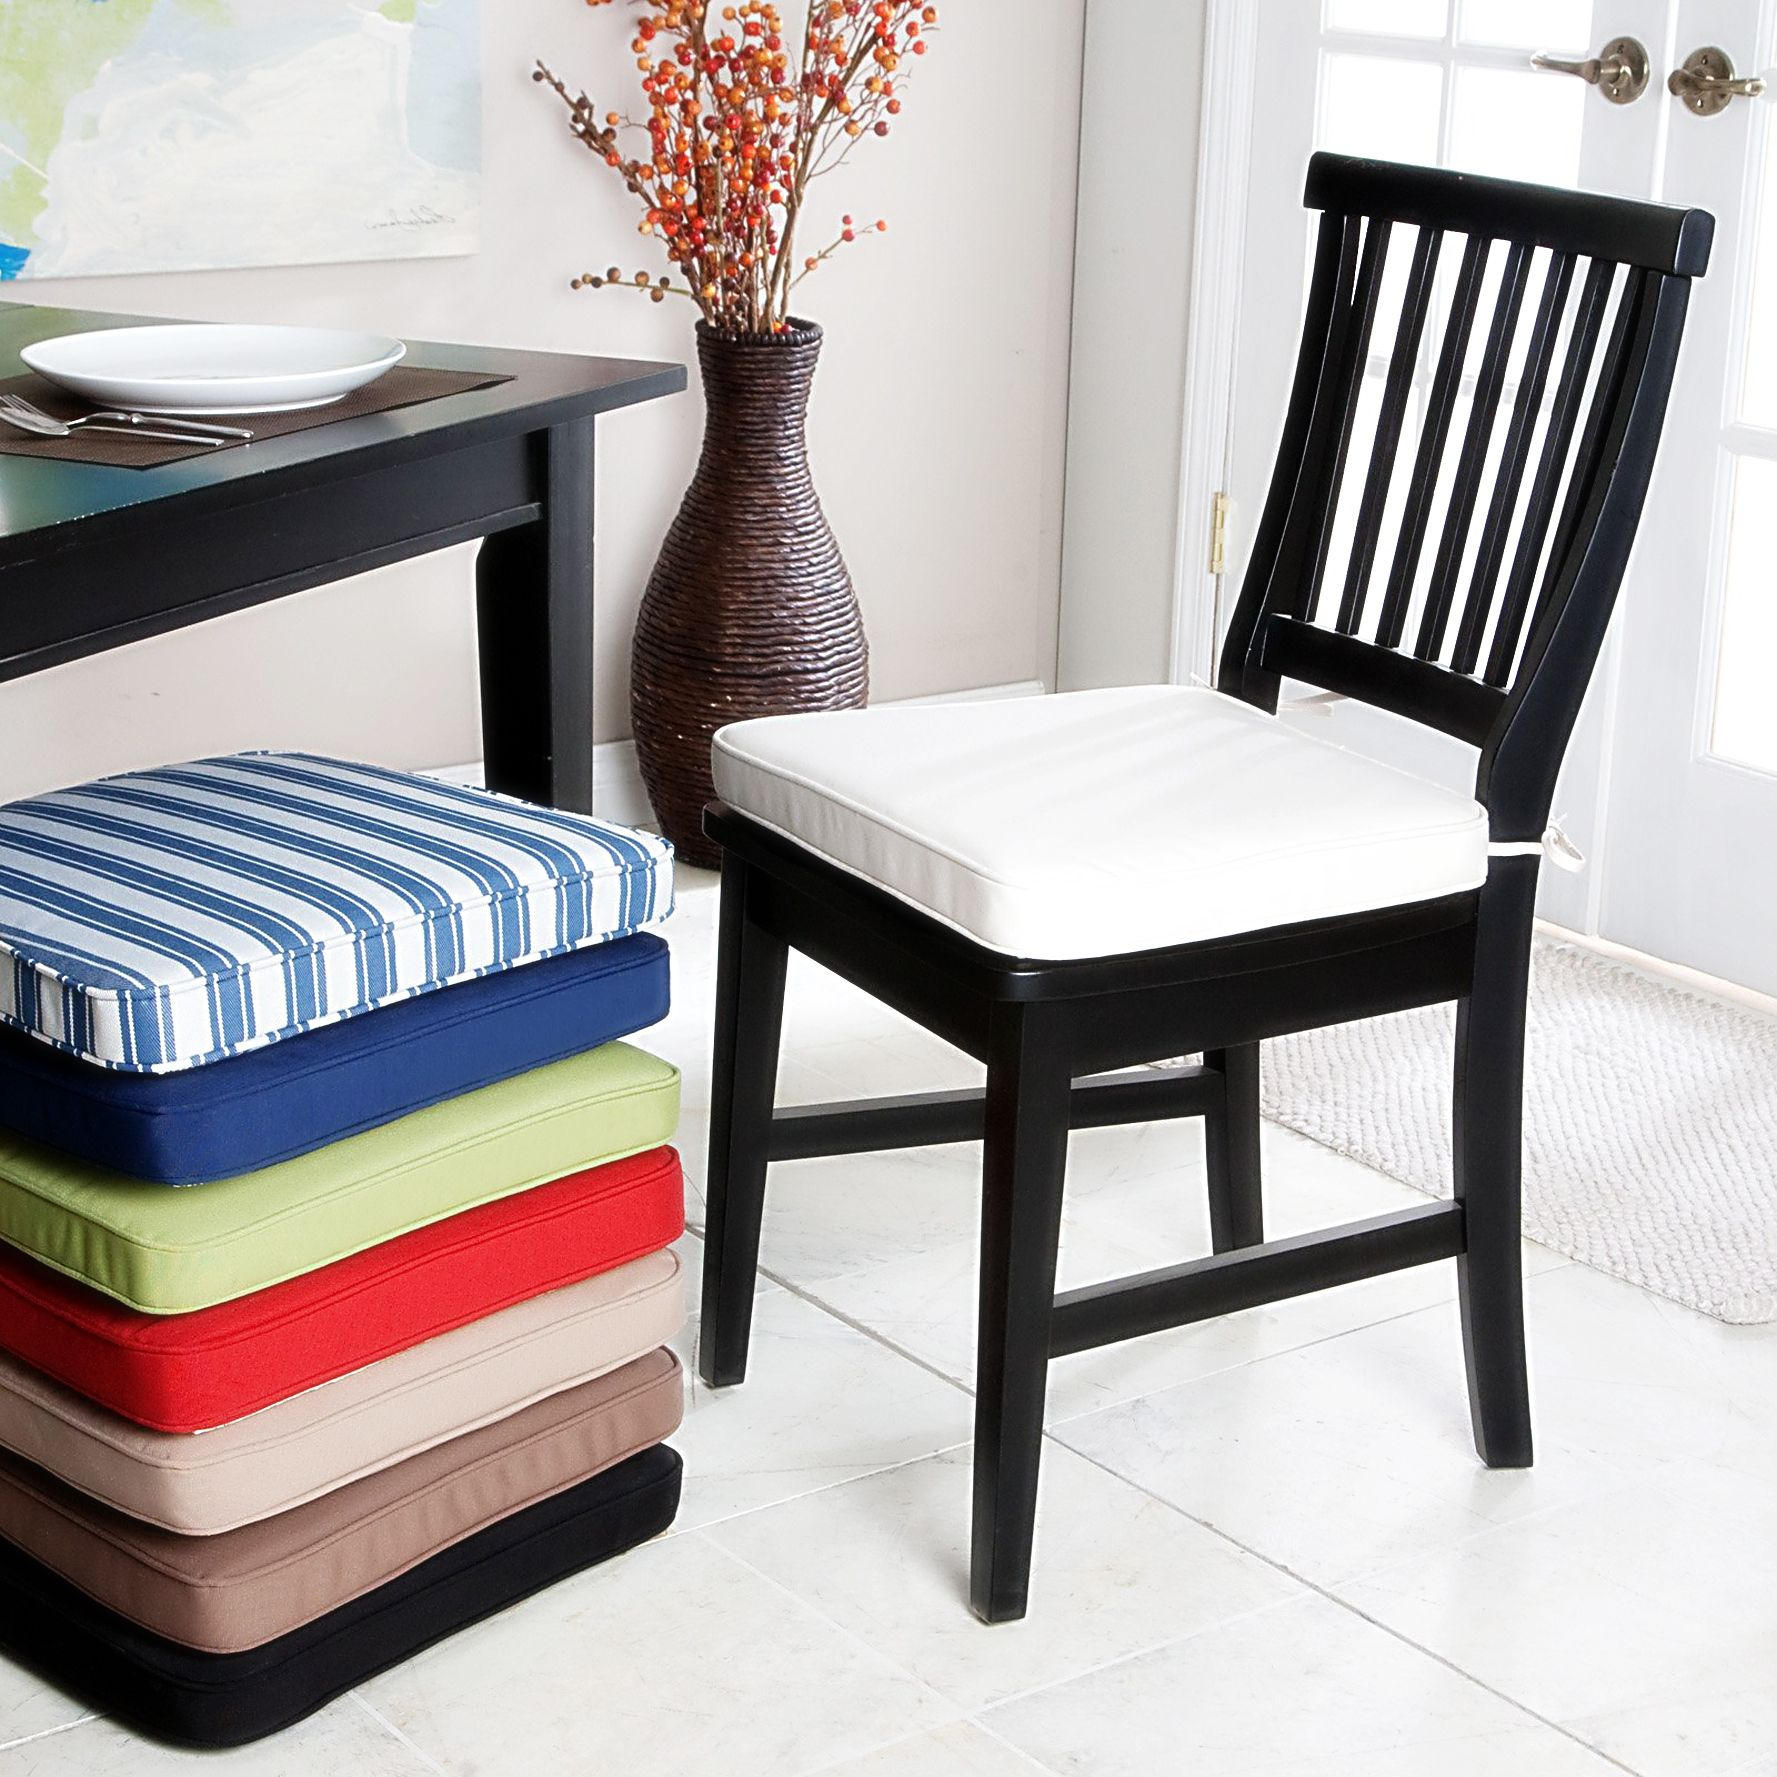 Pier 1 Dining Room Chair Cushions